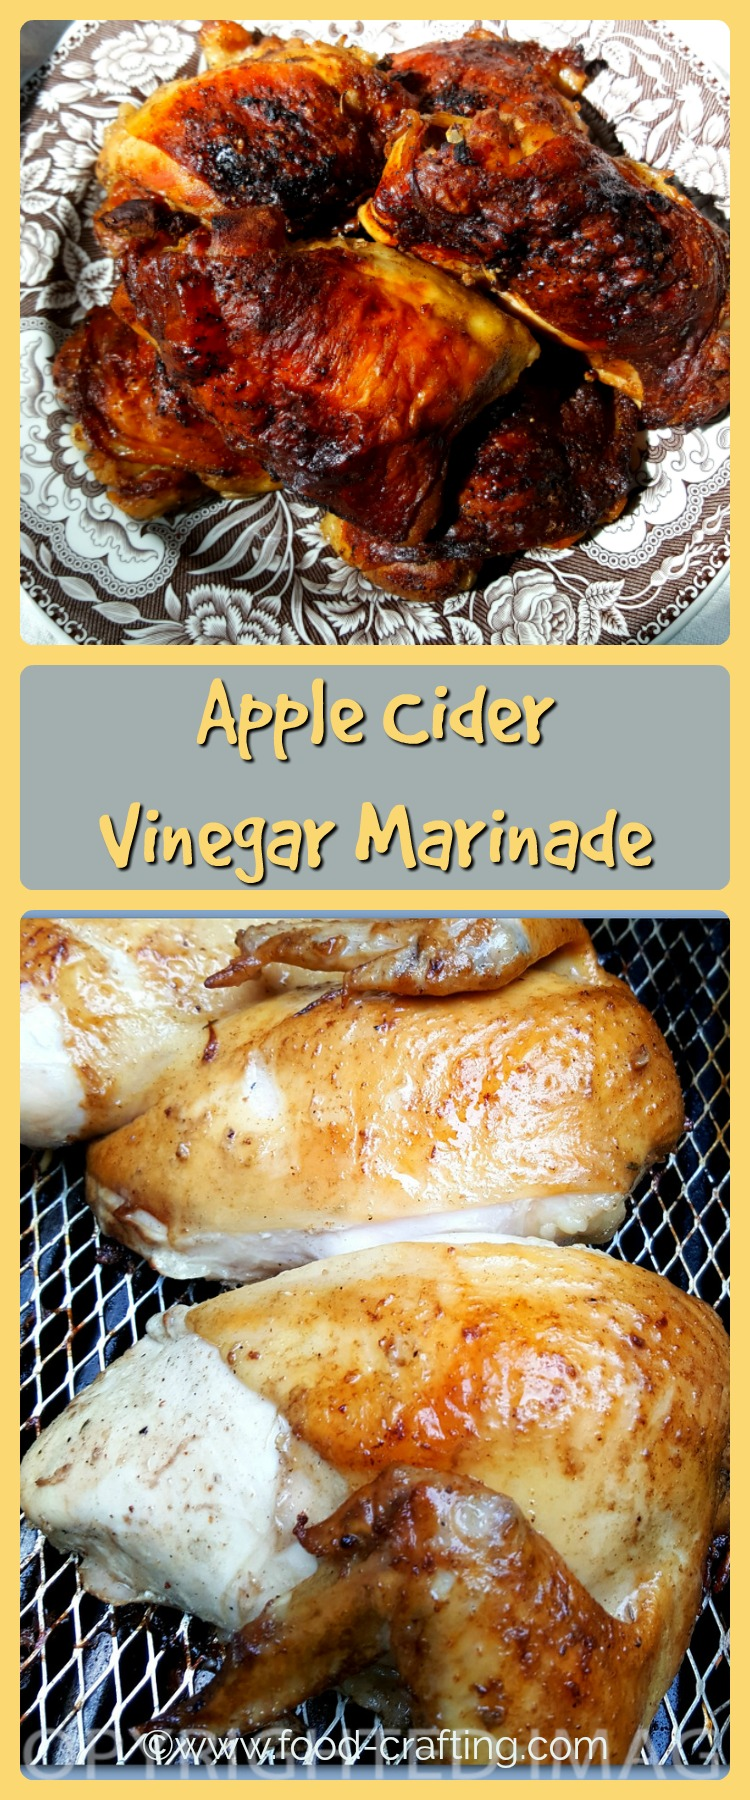 Make this apple cider vinegar marinade for your next batch of grilled chicken. You may say goodbye to tomato based BBQ sauces and switch to tangy marinade!